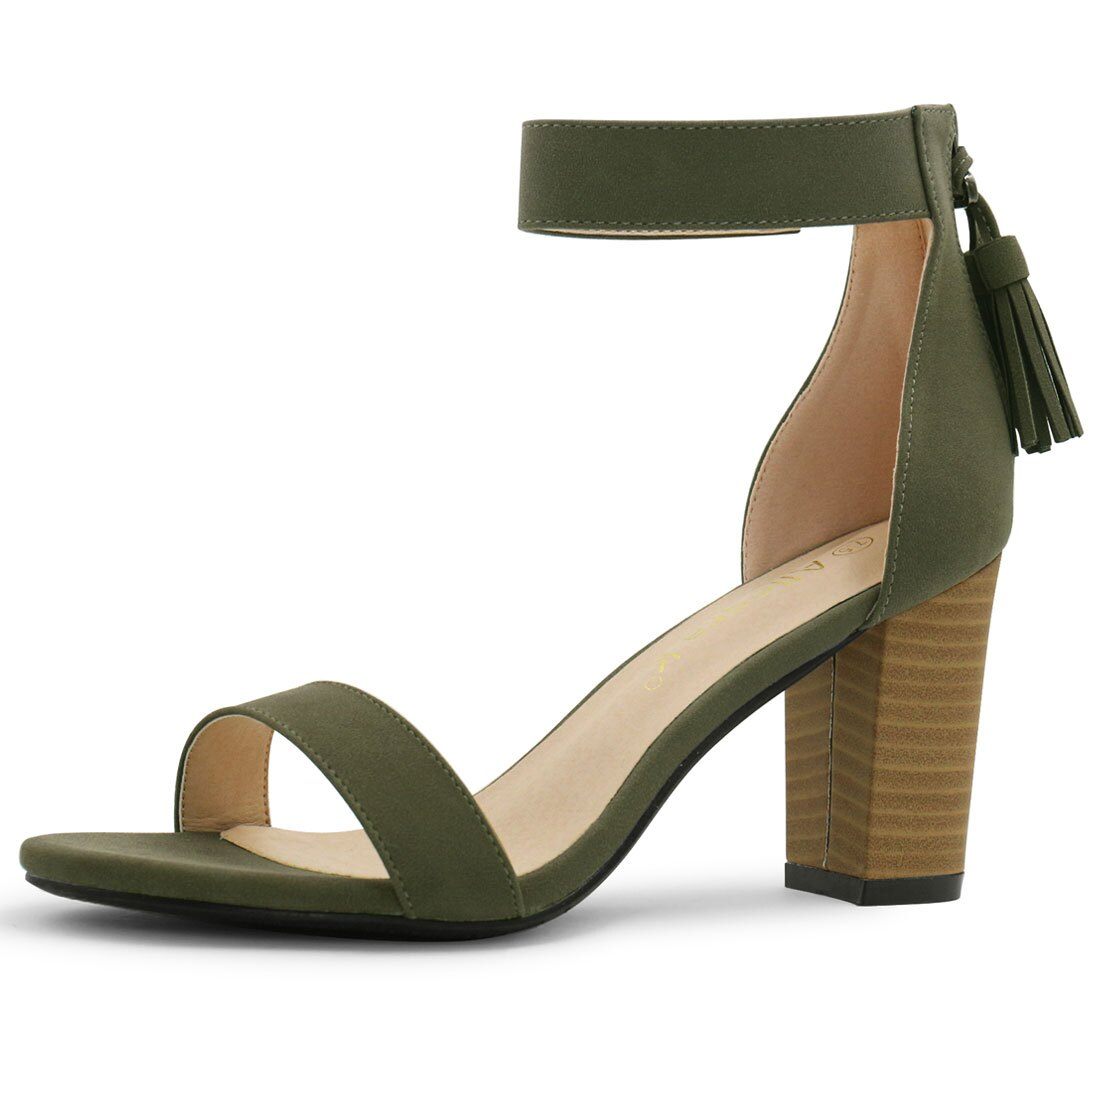 6cadfb3045a Unique Bargains Women s Open Toe Tassel Stacked Heel Ankle Strap Sandals  Khaki Green (Size 7